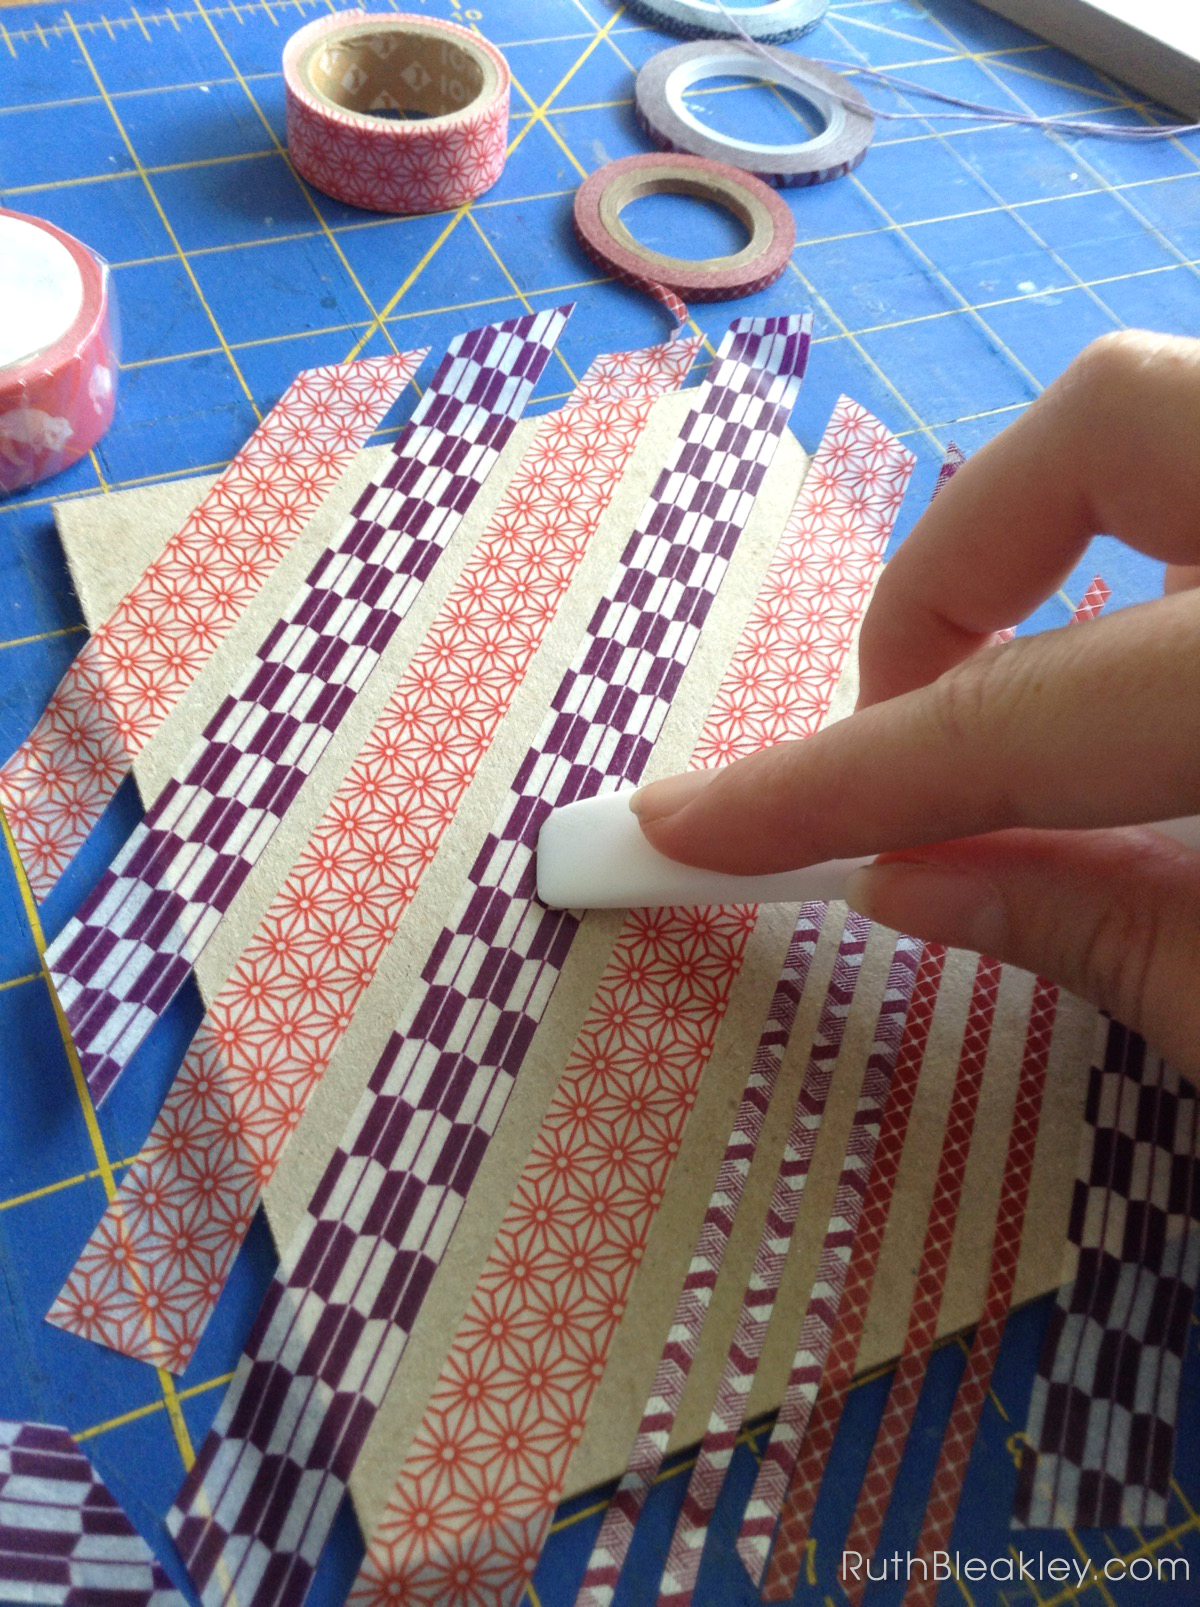 Making Washi Tape Journals with ladder stitching by Ruth Bleakley - 5